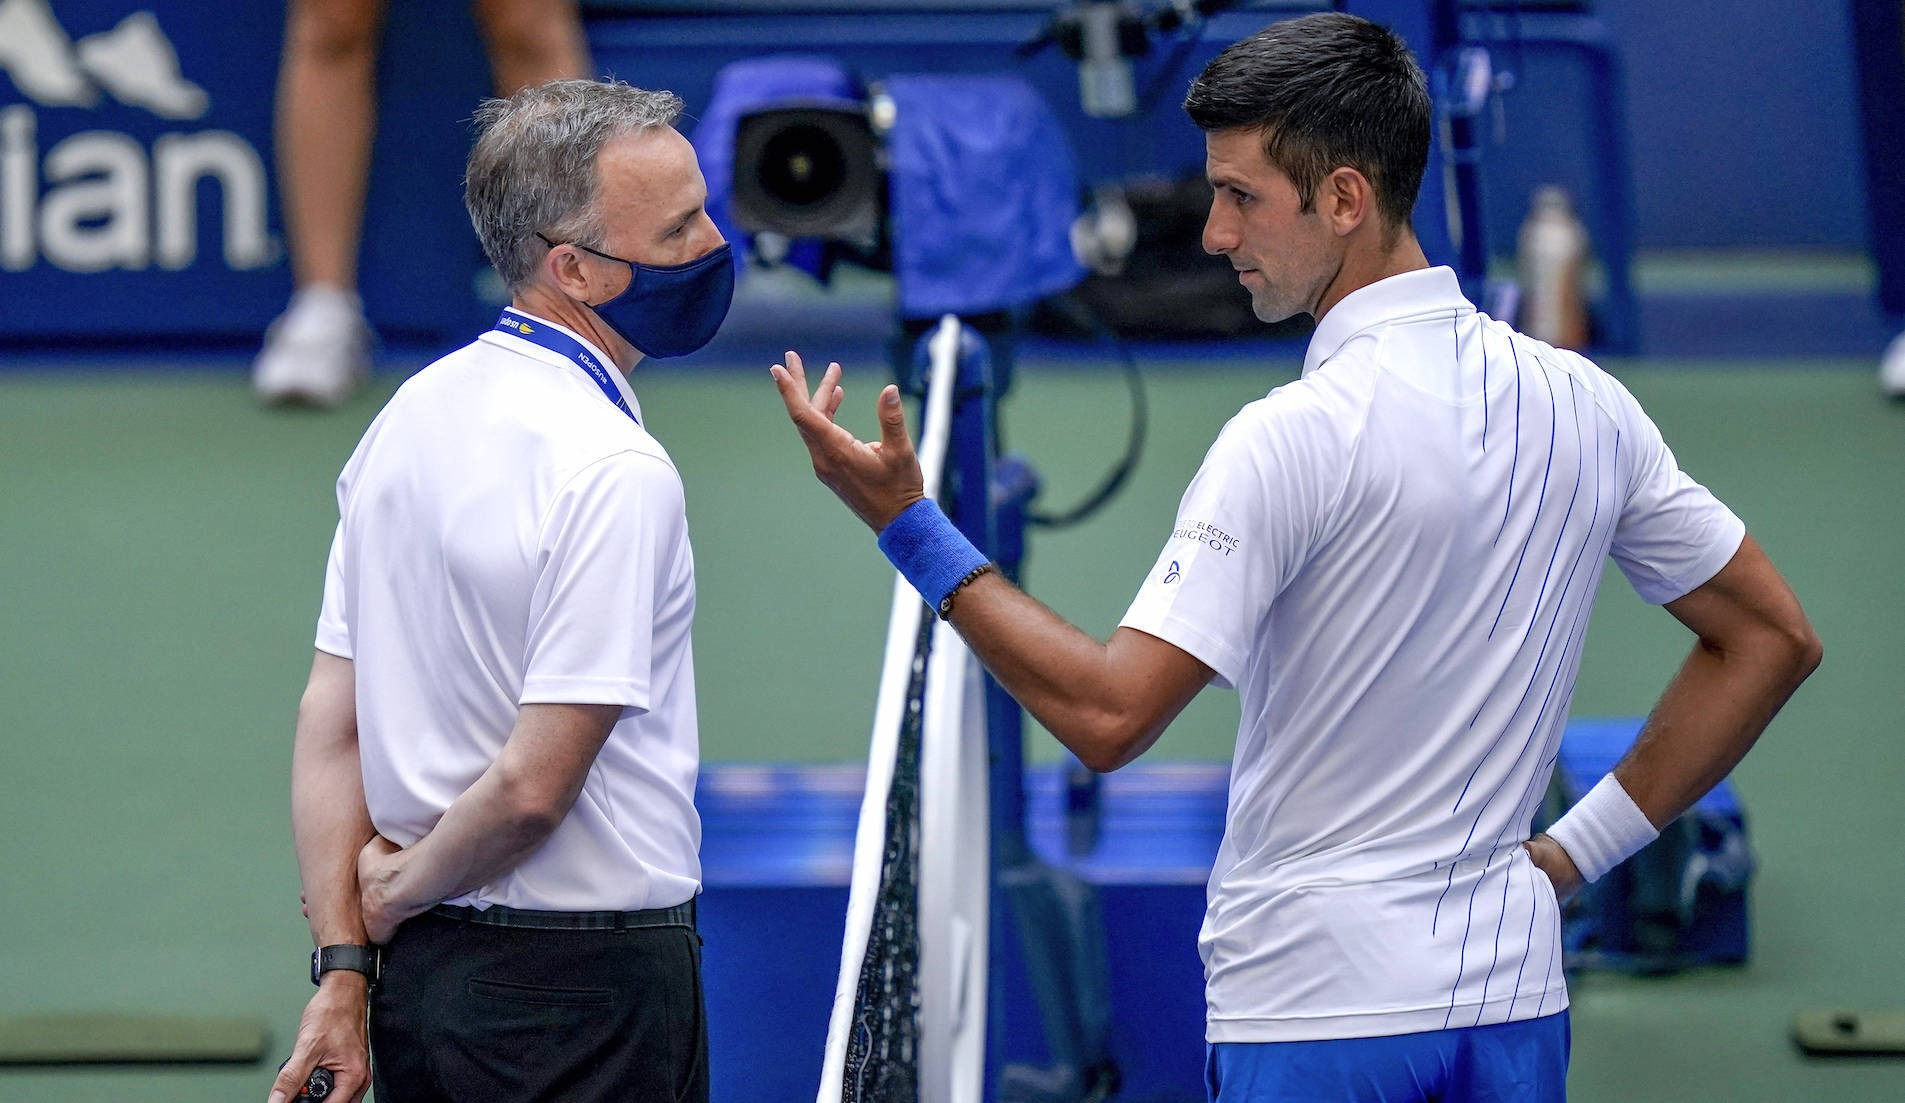 Novak Djokovic, of Serbia, talks with the umpire after inadvertently hitting a line judge with a ball after hitting it in reaction to losing a point against Pablo Carreno Busta, of Spain, during the fourth round of the US Open tennis championships, Sunday, Sept. 6, 2020, in New York. Djokovic defaulted the match. (AP Photo/Seth Wenig)/USO169/20250742484133//2009062231